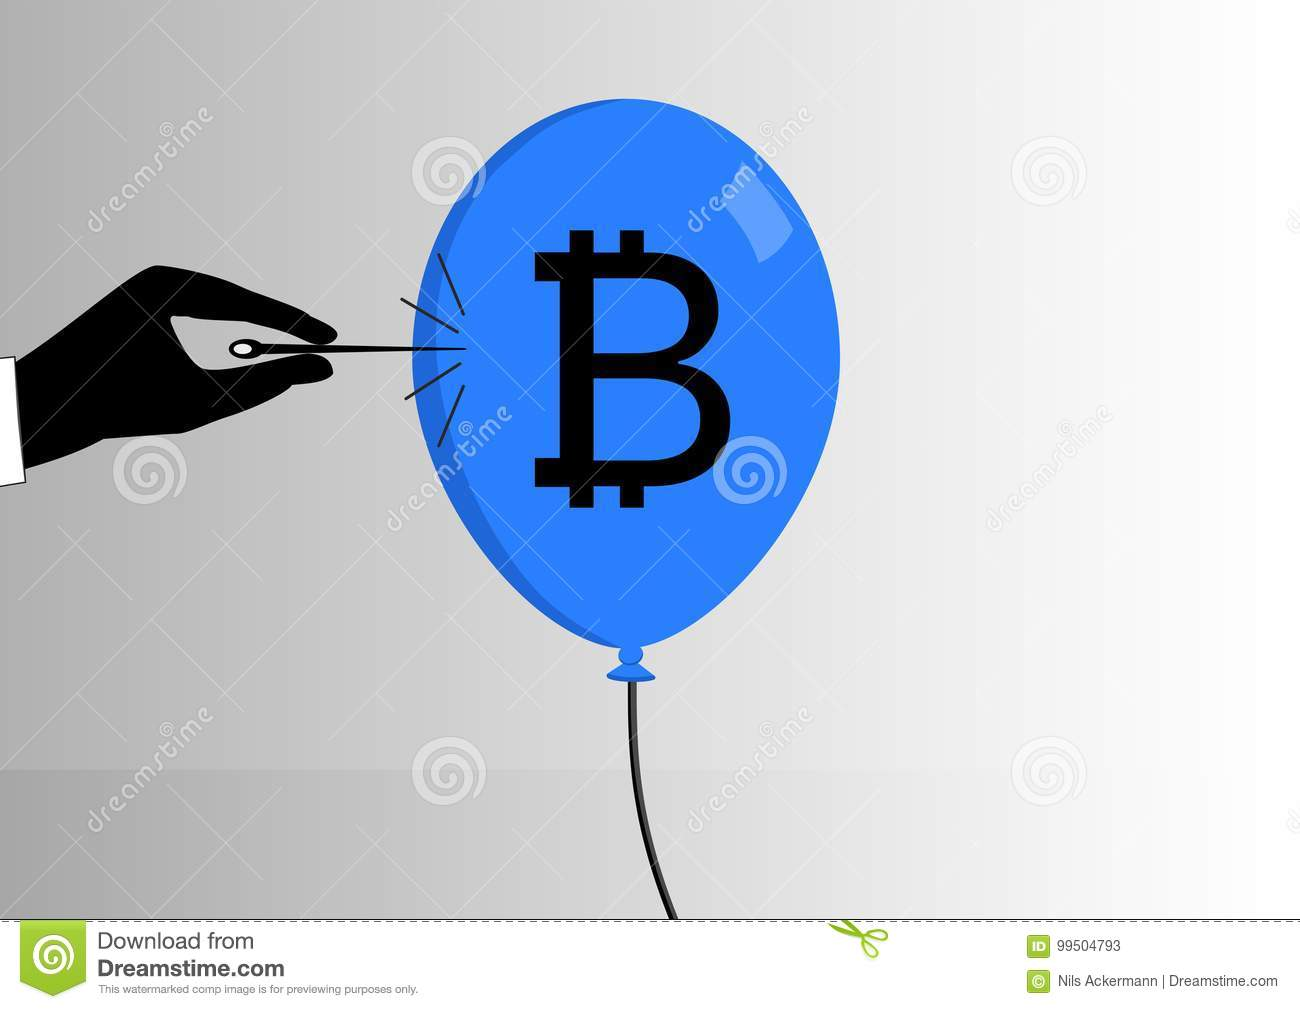 Concept of bitcoin bubble burst or decline of the bitcoin currency.